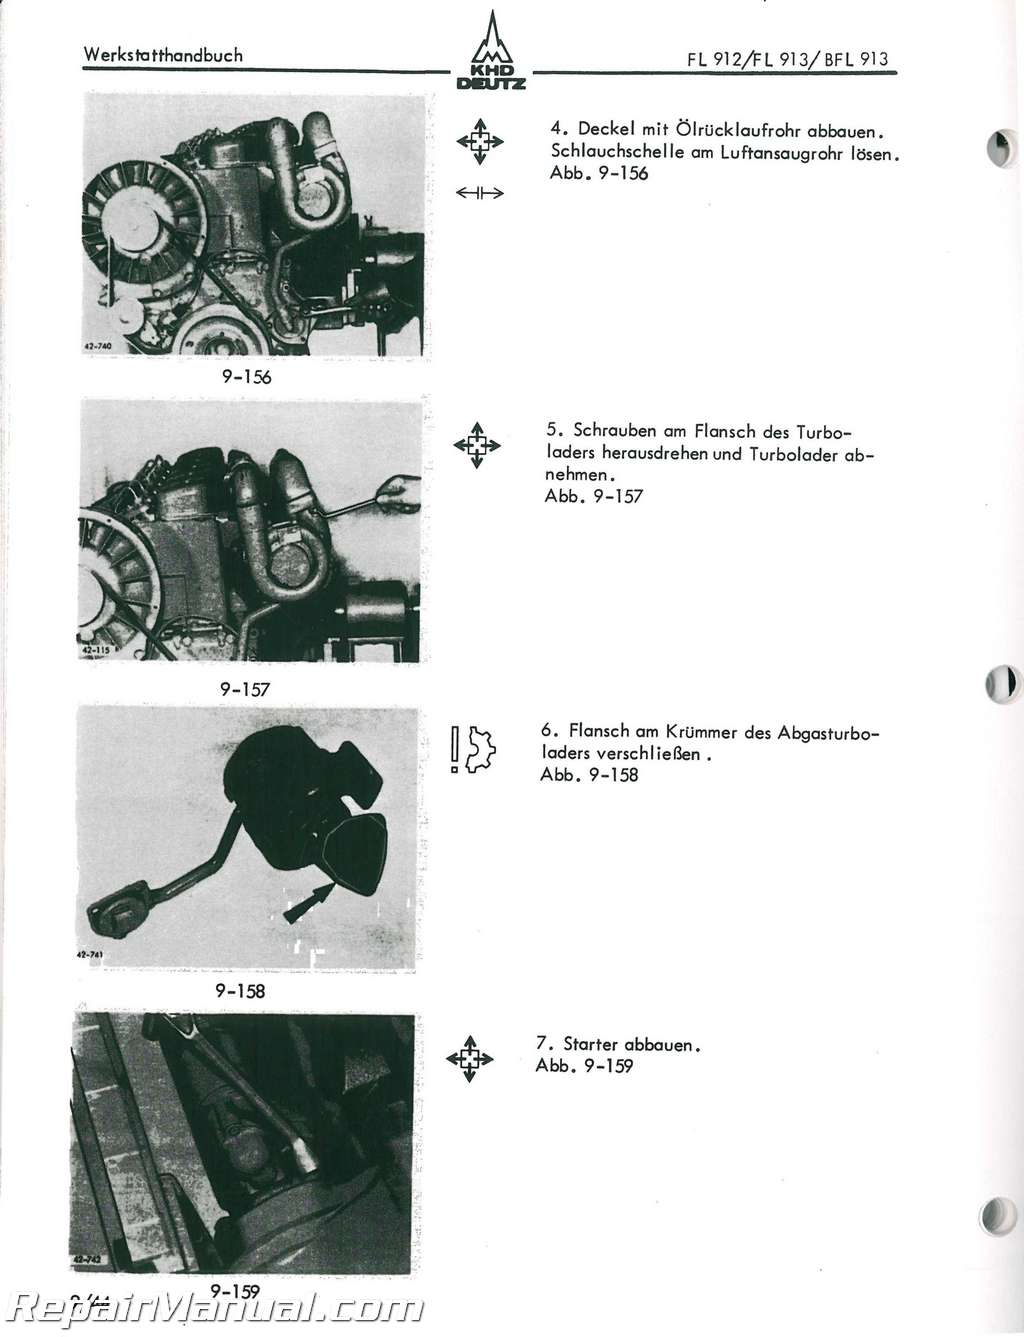 deutz allis model 912 913 engine service manual rh repairmanual com Deutz 912 Parts Deutz 912 Engine